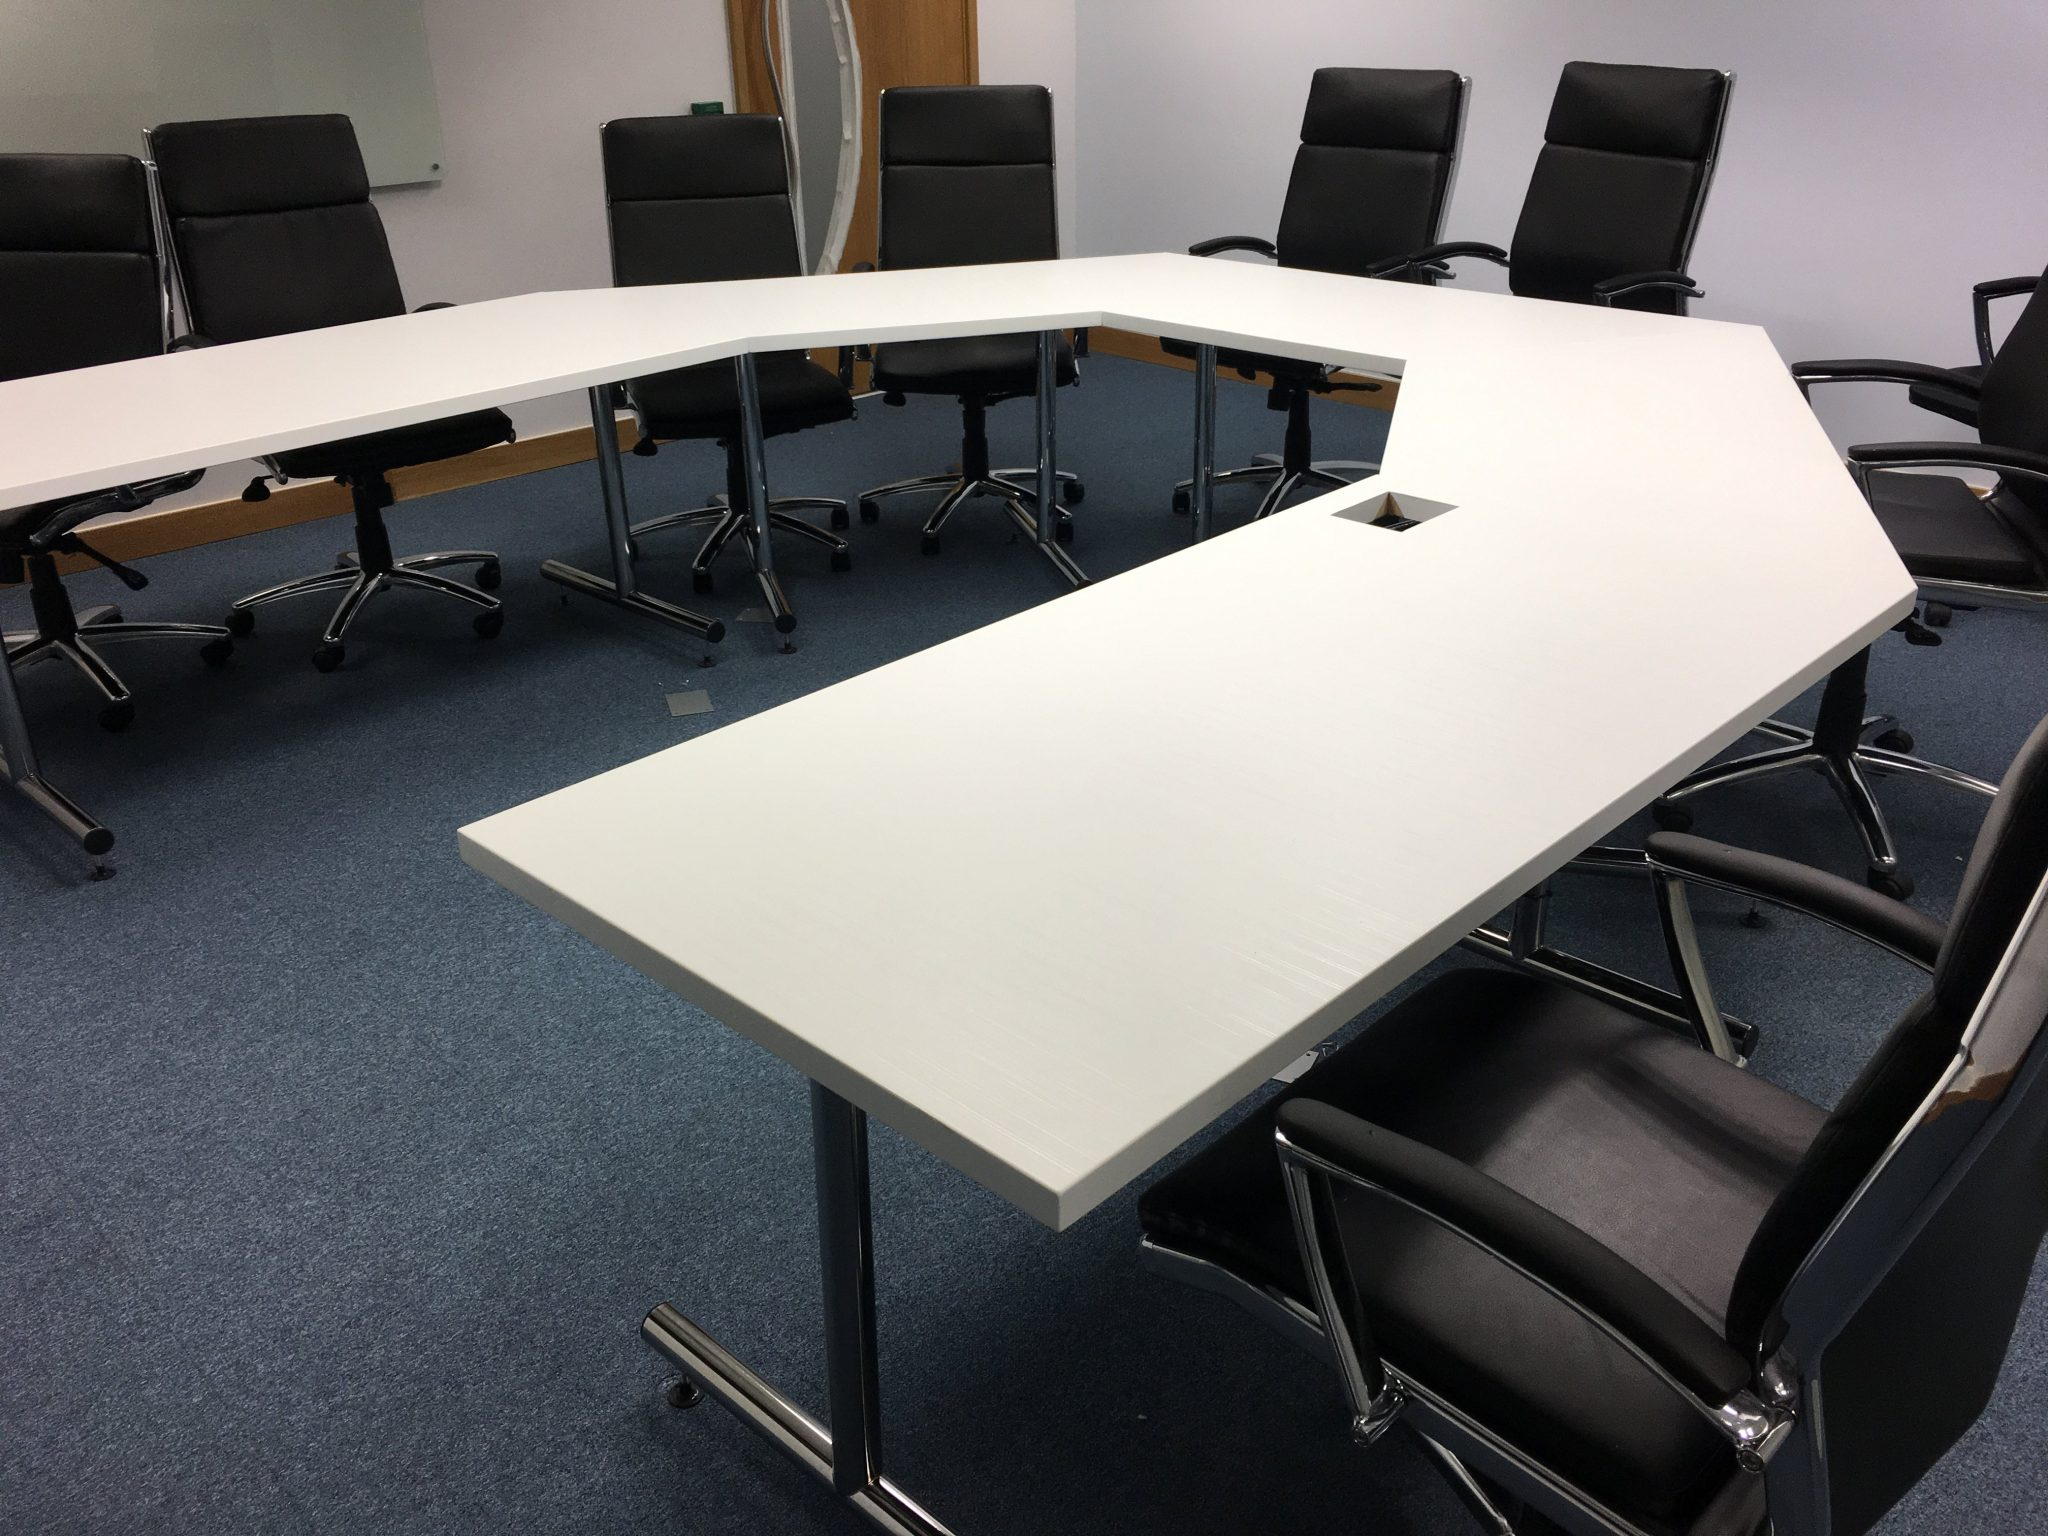 Meeting room table wrapped